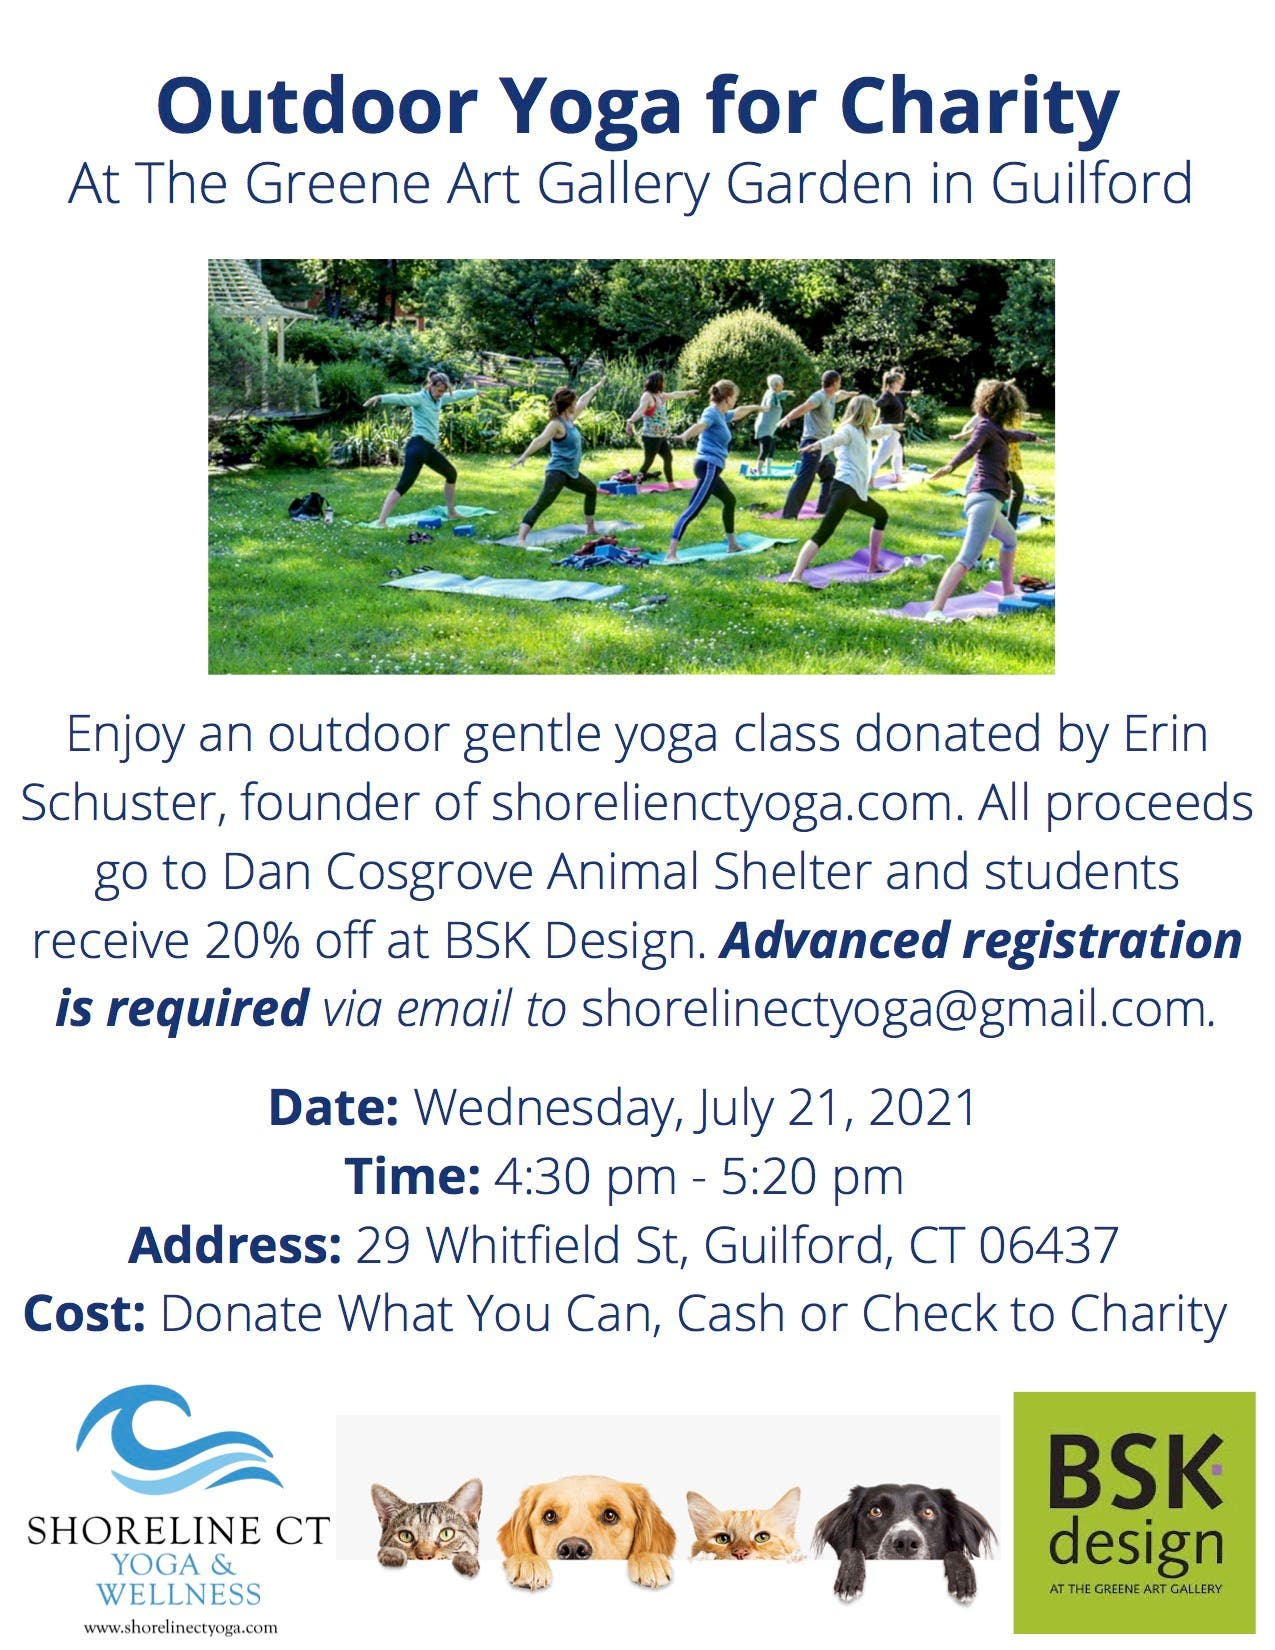 Outdoor Yoga to Support Dan Cosgrove Animal Shelter